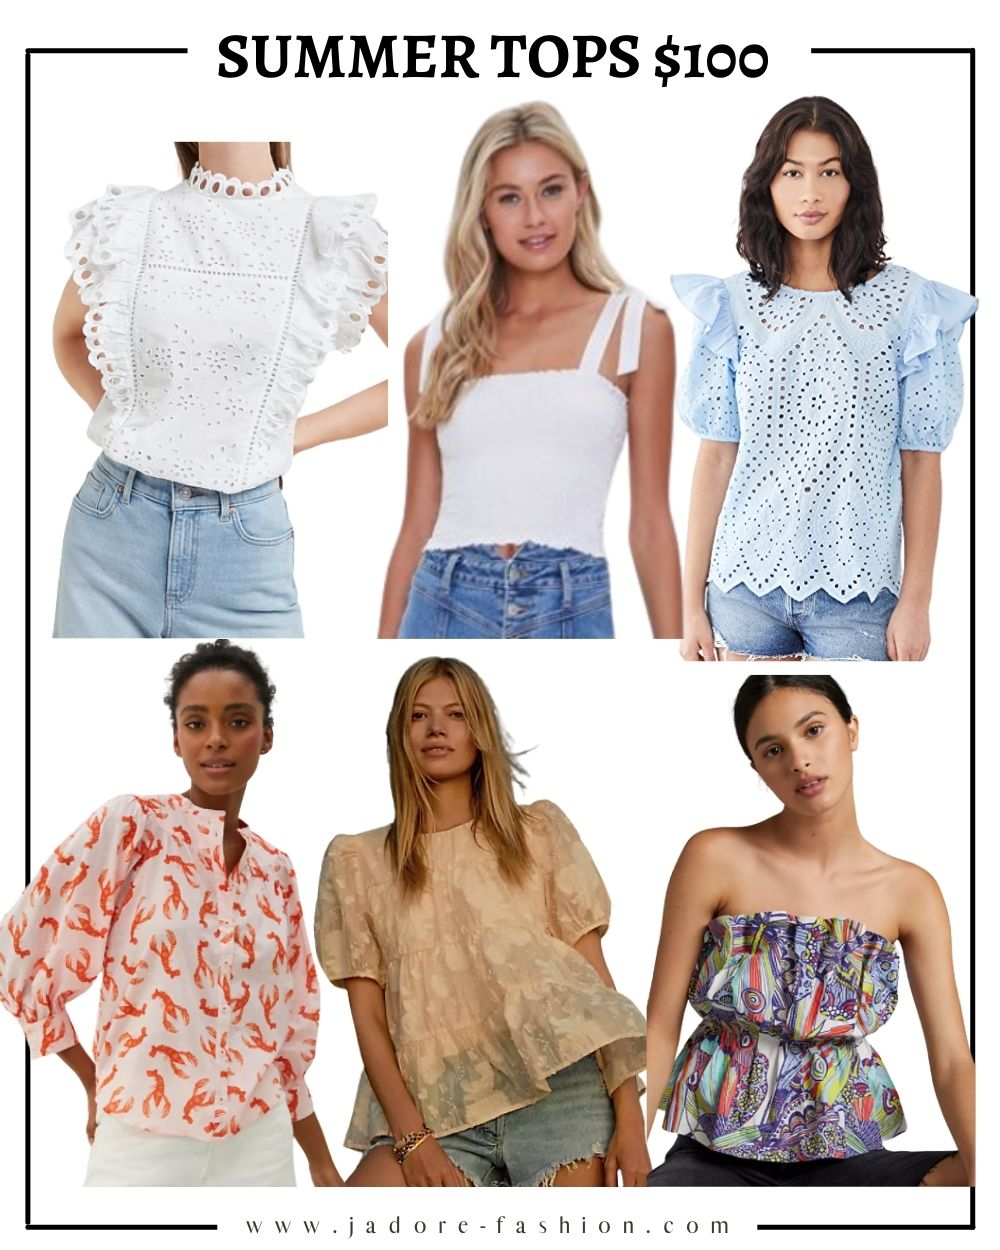 Stella-adewunmi-of-jadore-fashion-blog-summer-tops-and-shoes-under-100-to-shop